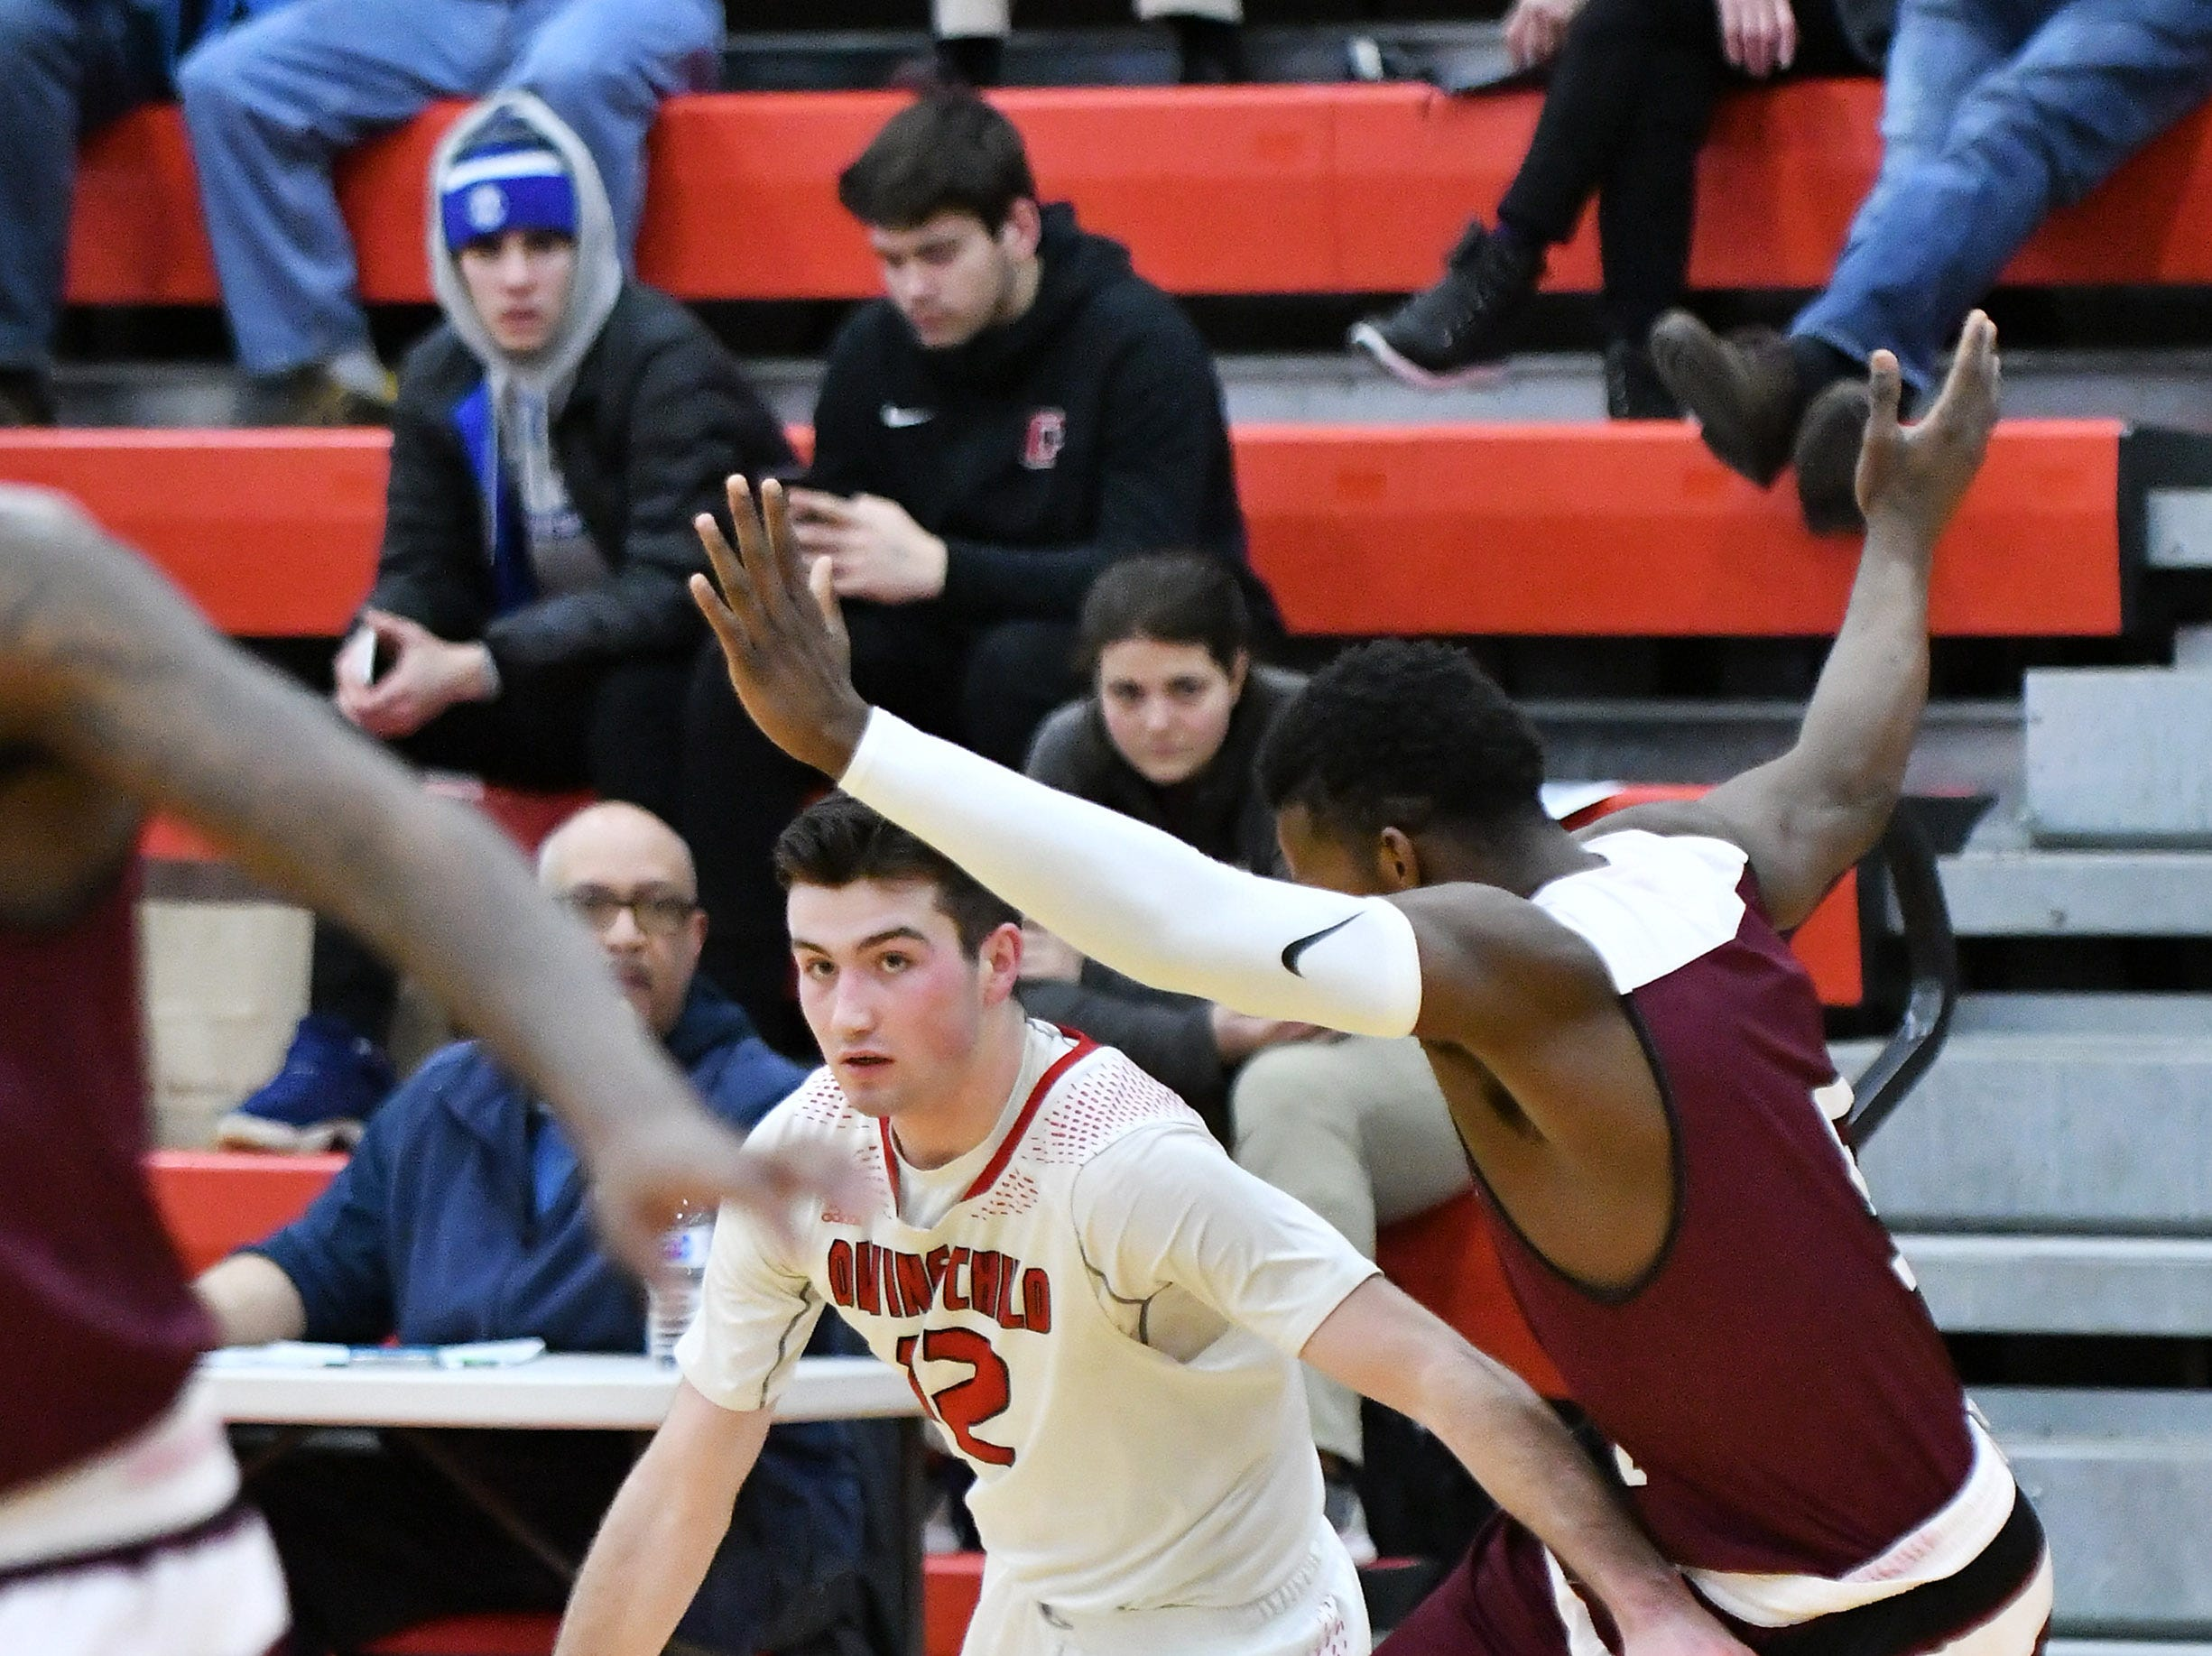 River Rouge's Jason Norton guards Divine Child's Jack Kenney (12) in the second half.